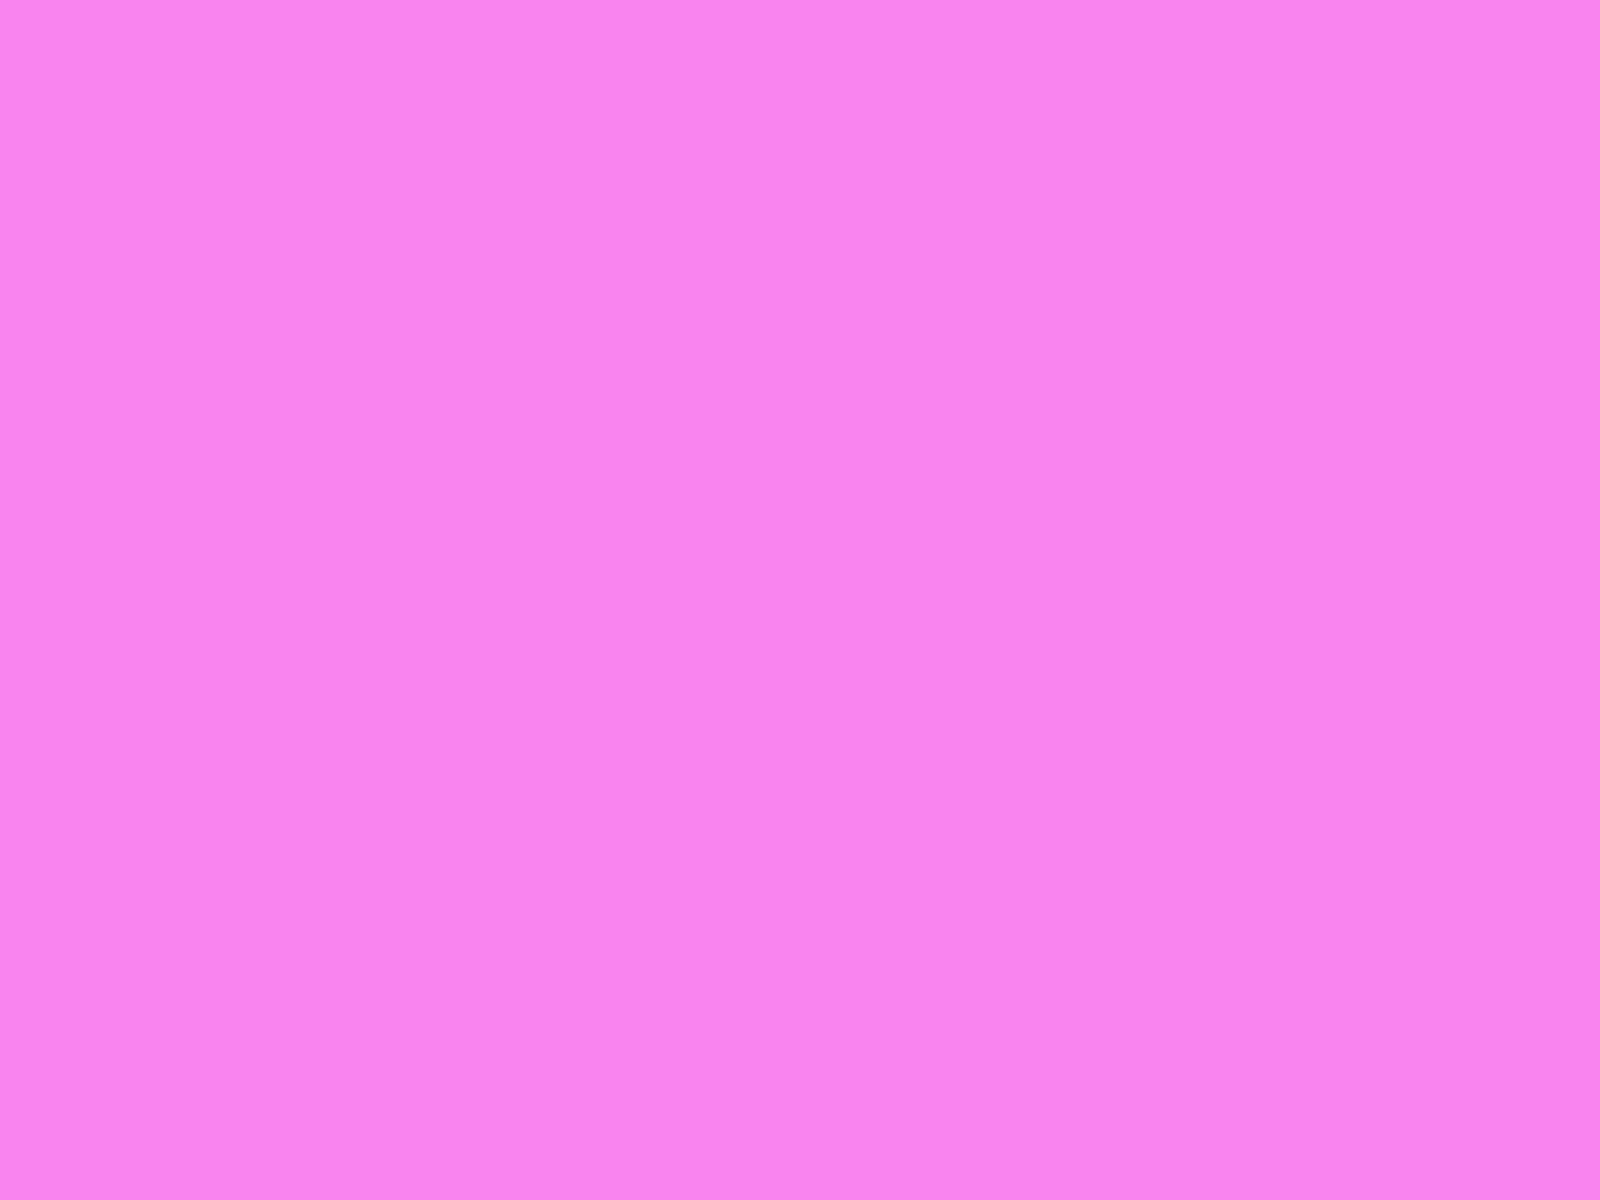 1600x1200 Light Fuchsia Pink Solid Color Background